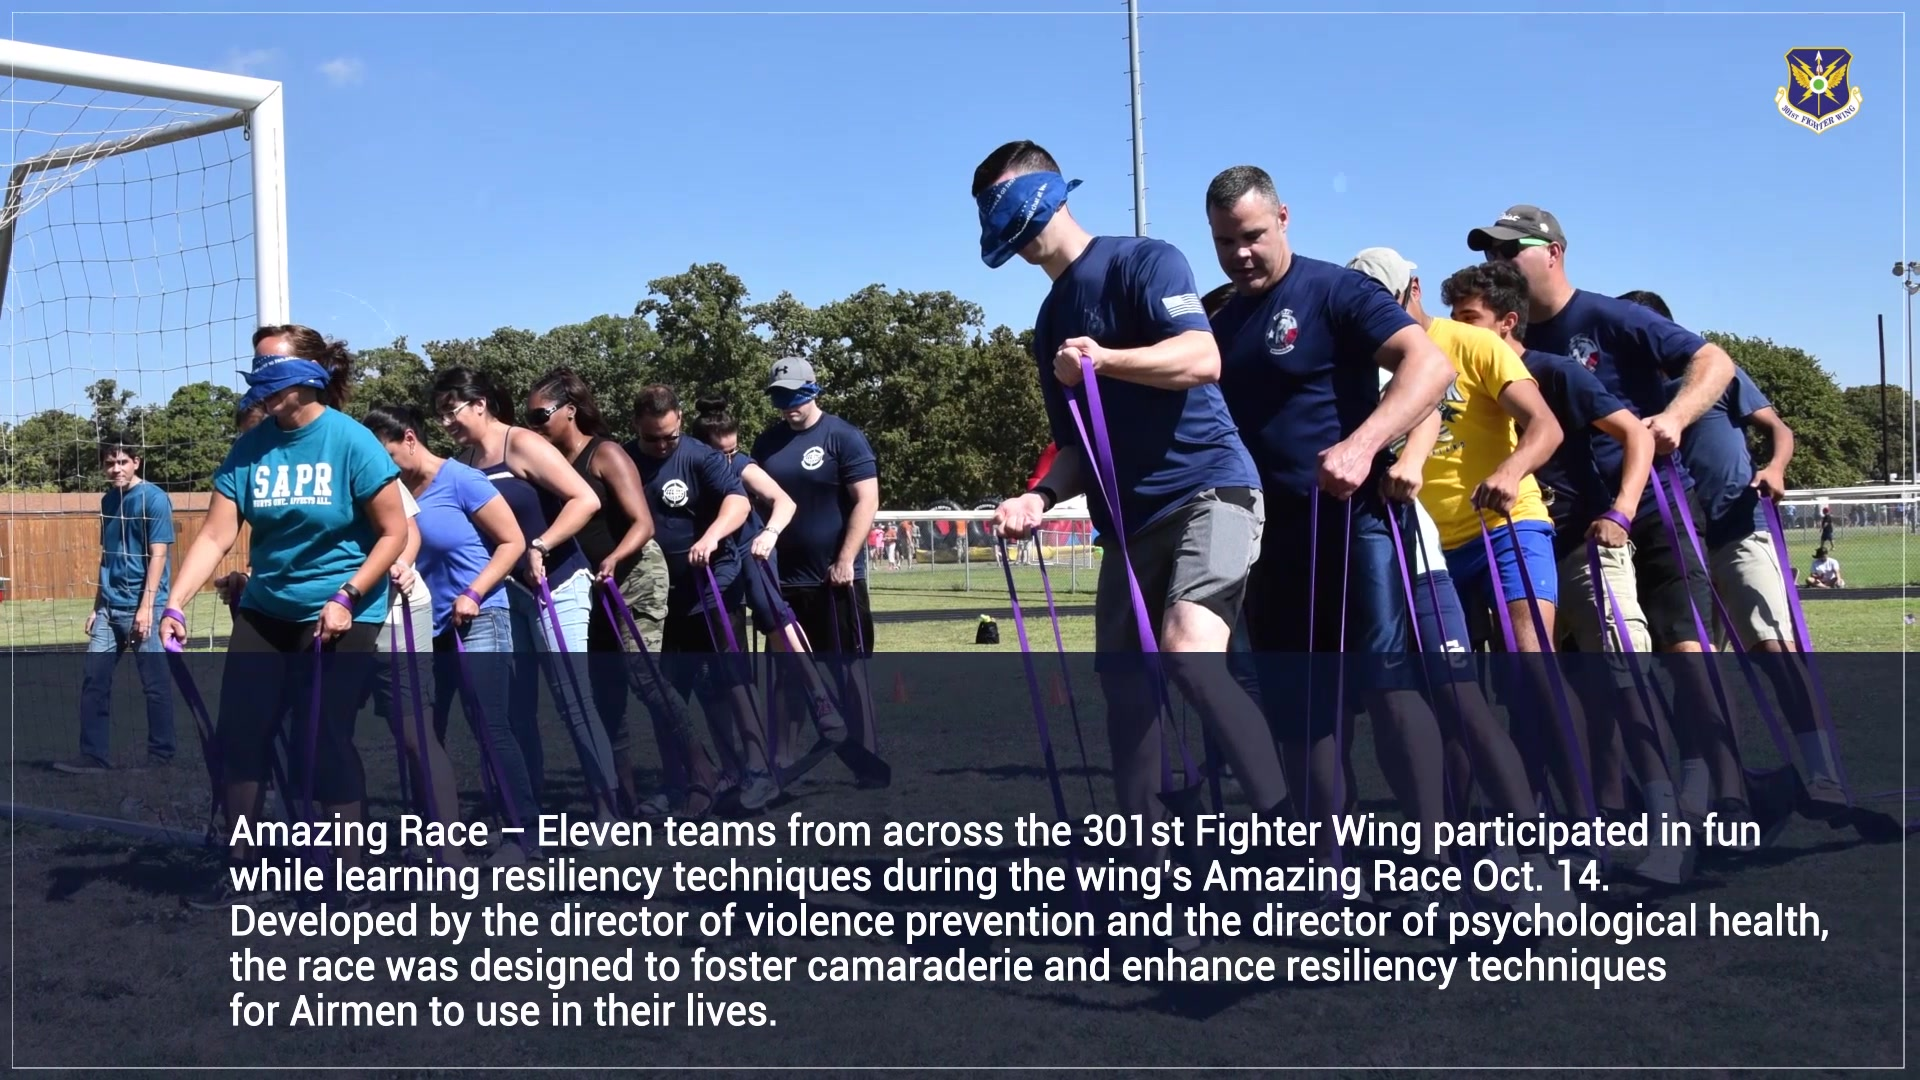 Check out the October Month In Review! This video features photos captured during the wing's Family Day event, the Amazing Race competition, and the Chief's Group golf tournament. Thank you to the over 2,000 friends, families, coordinators, and volunteers that came out to help, support, and enjoy these events.